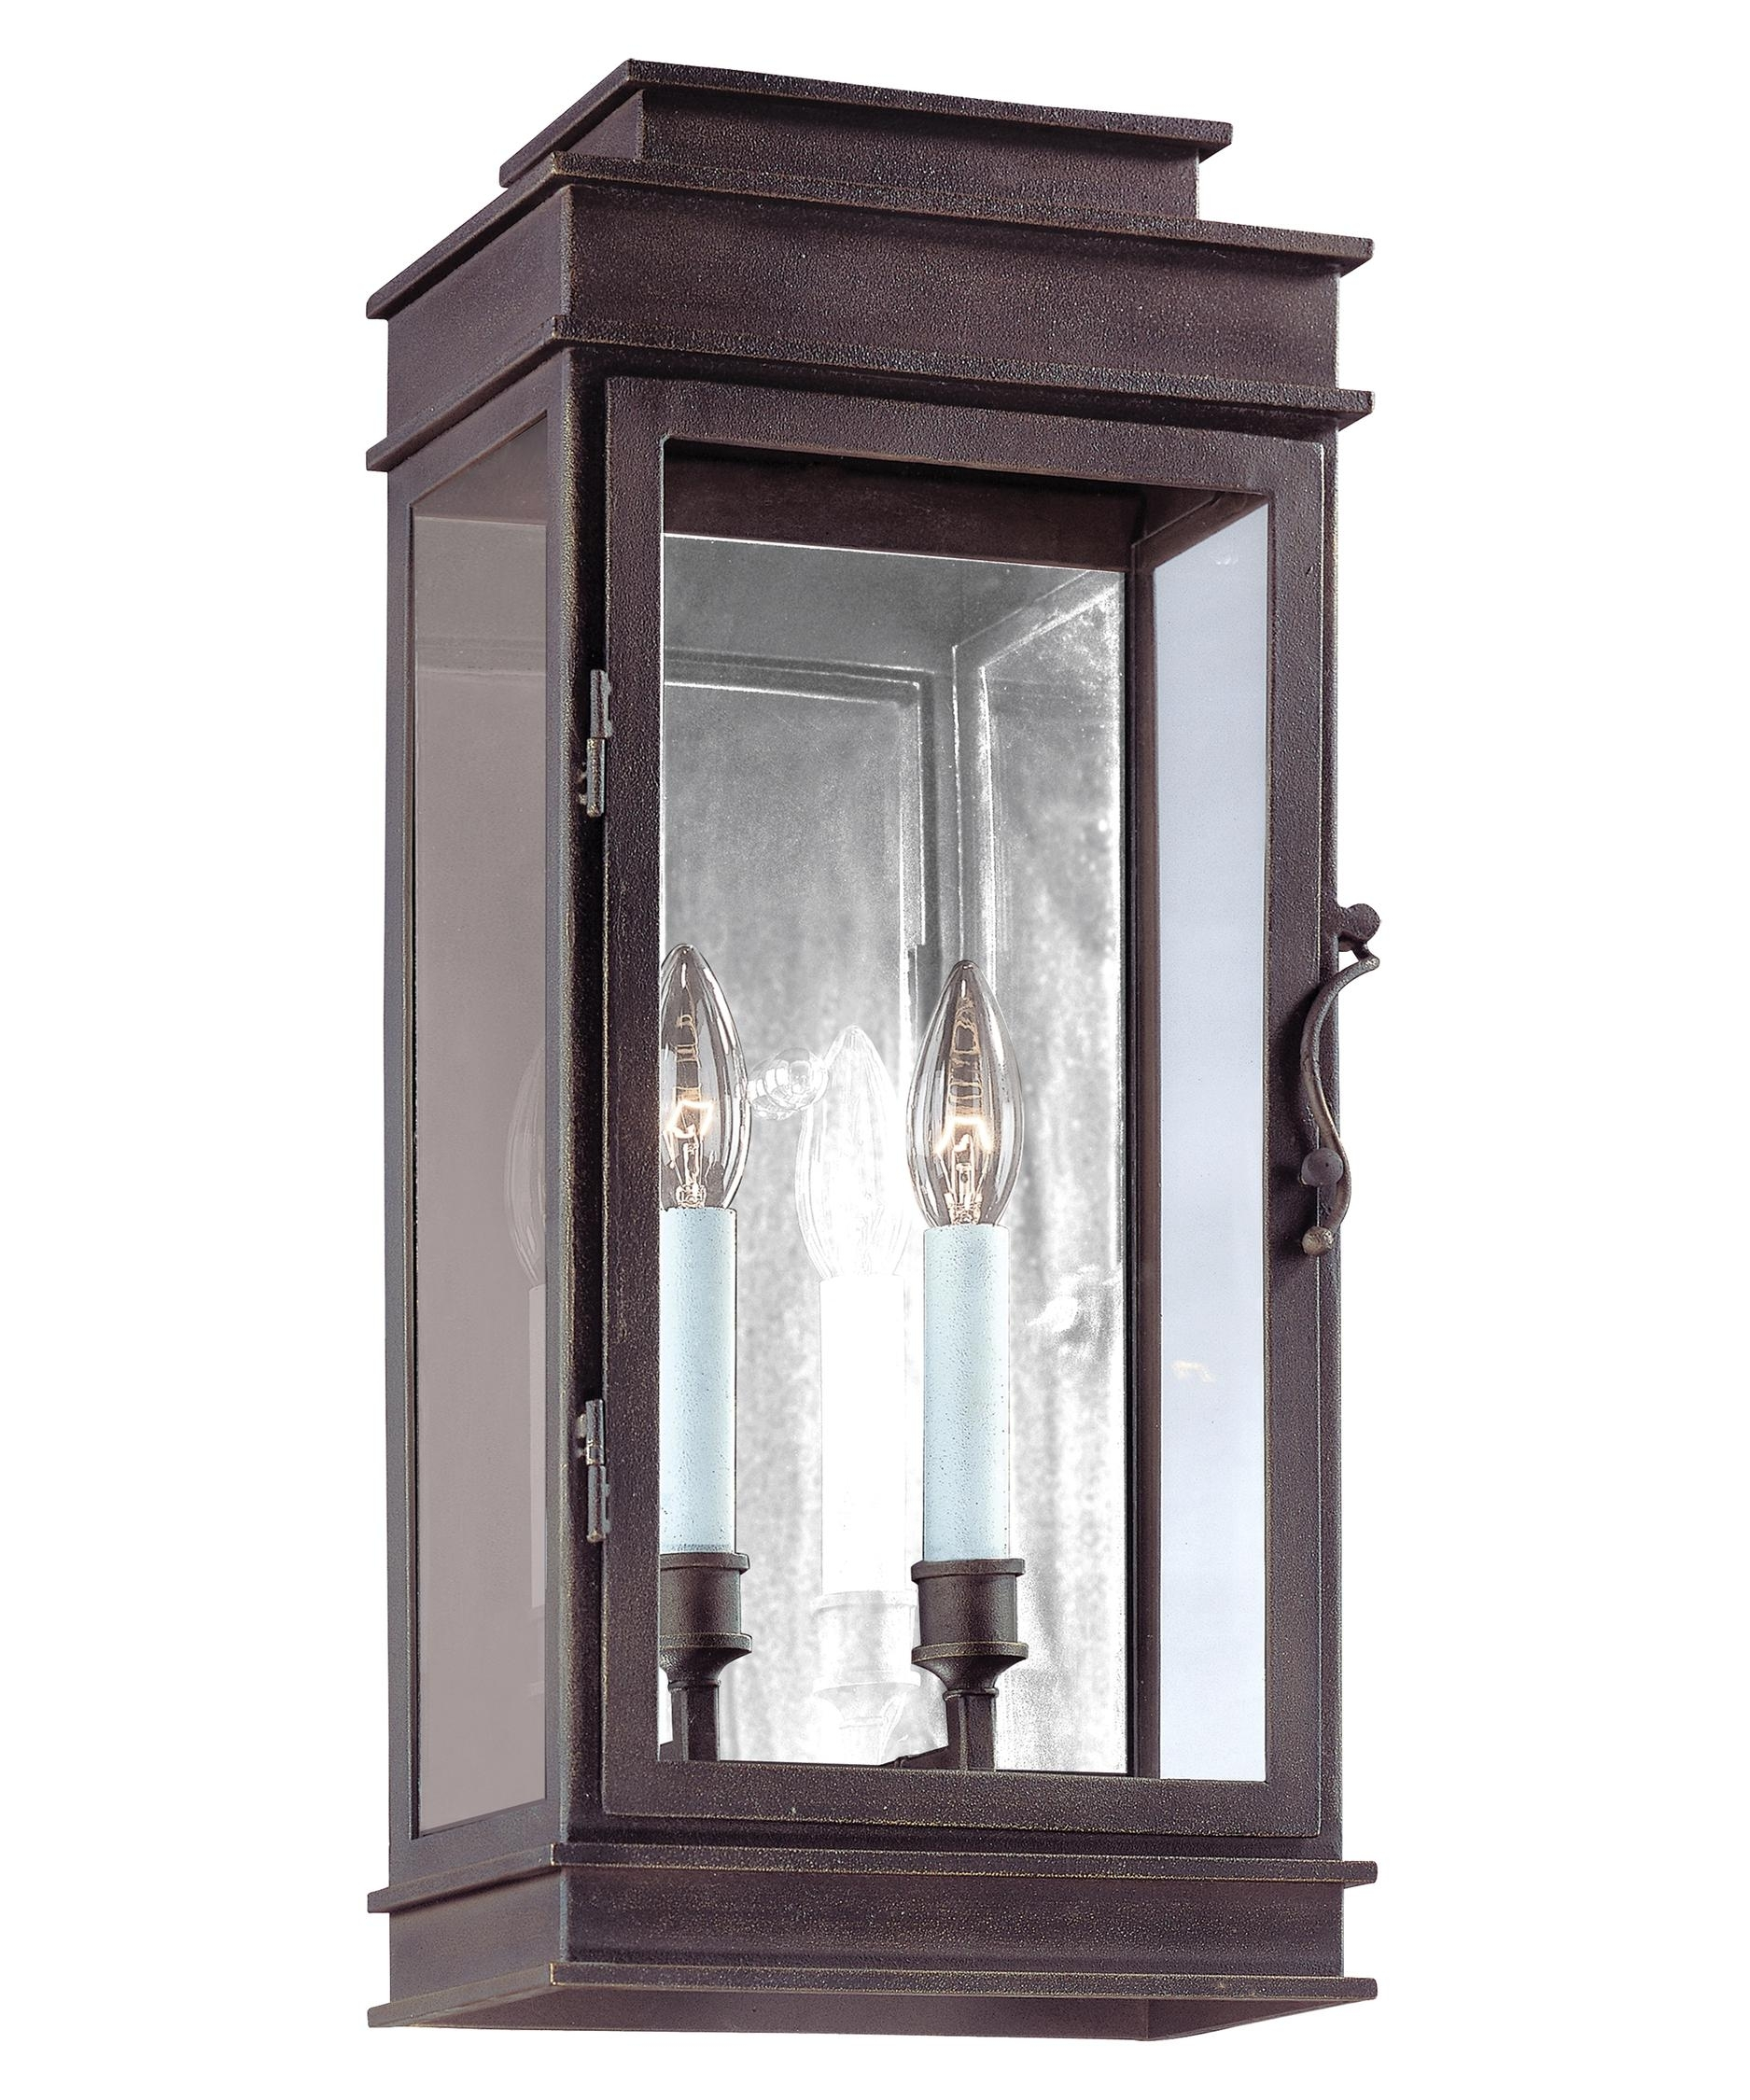 Troy Lighting B2972 Vintage 9 Inch Wide 2 Light Outdoor Wall Light in Outdoor Vintage Lanterns (Image 19 of 20)